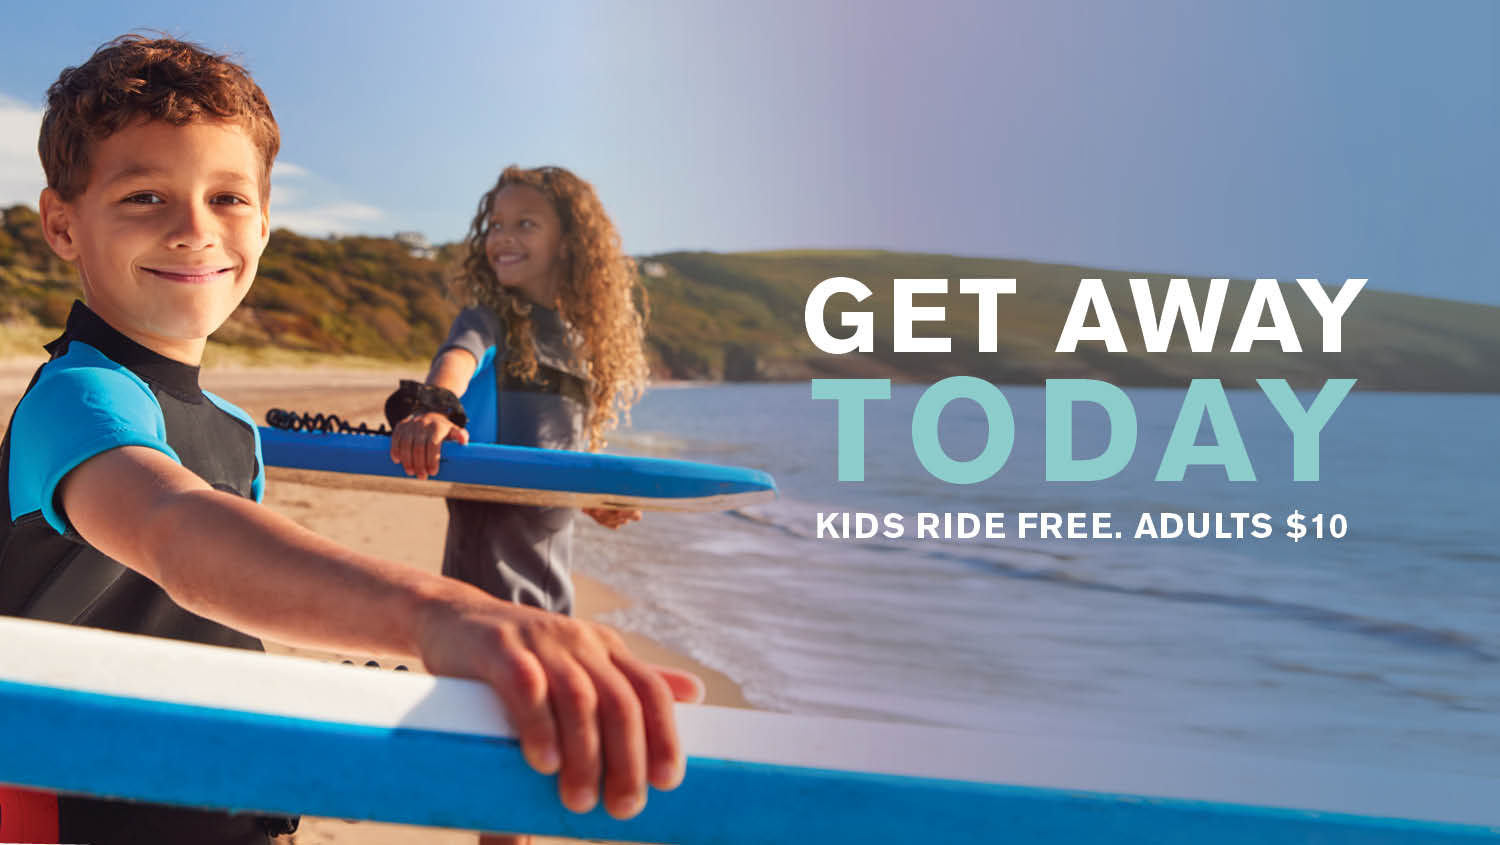 Kids Ride Free on Weekends